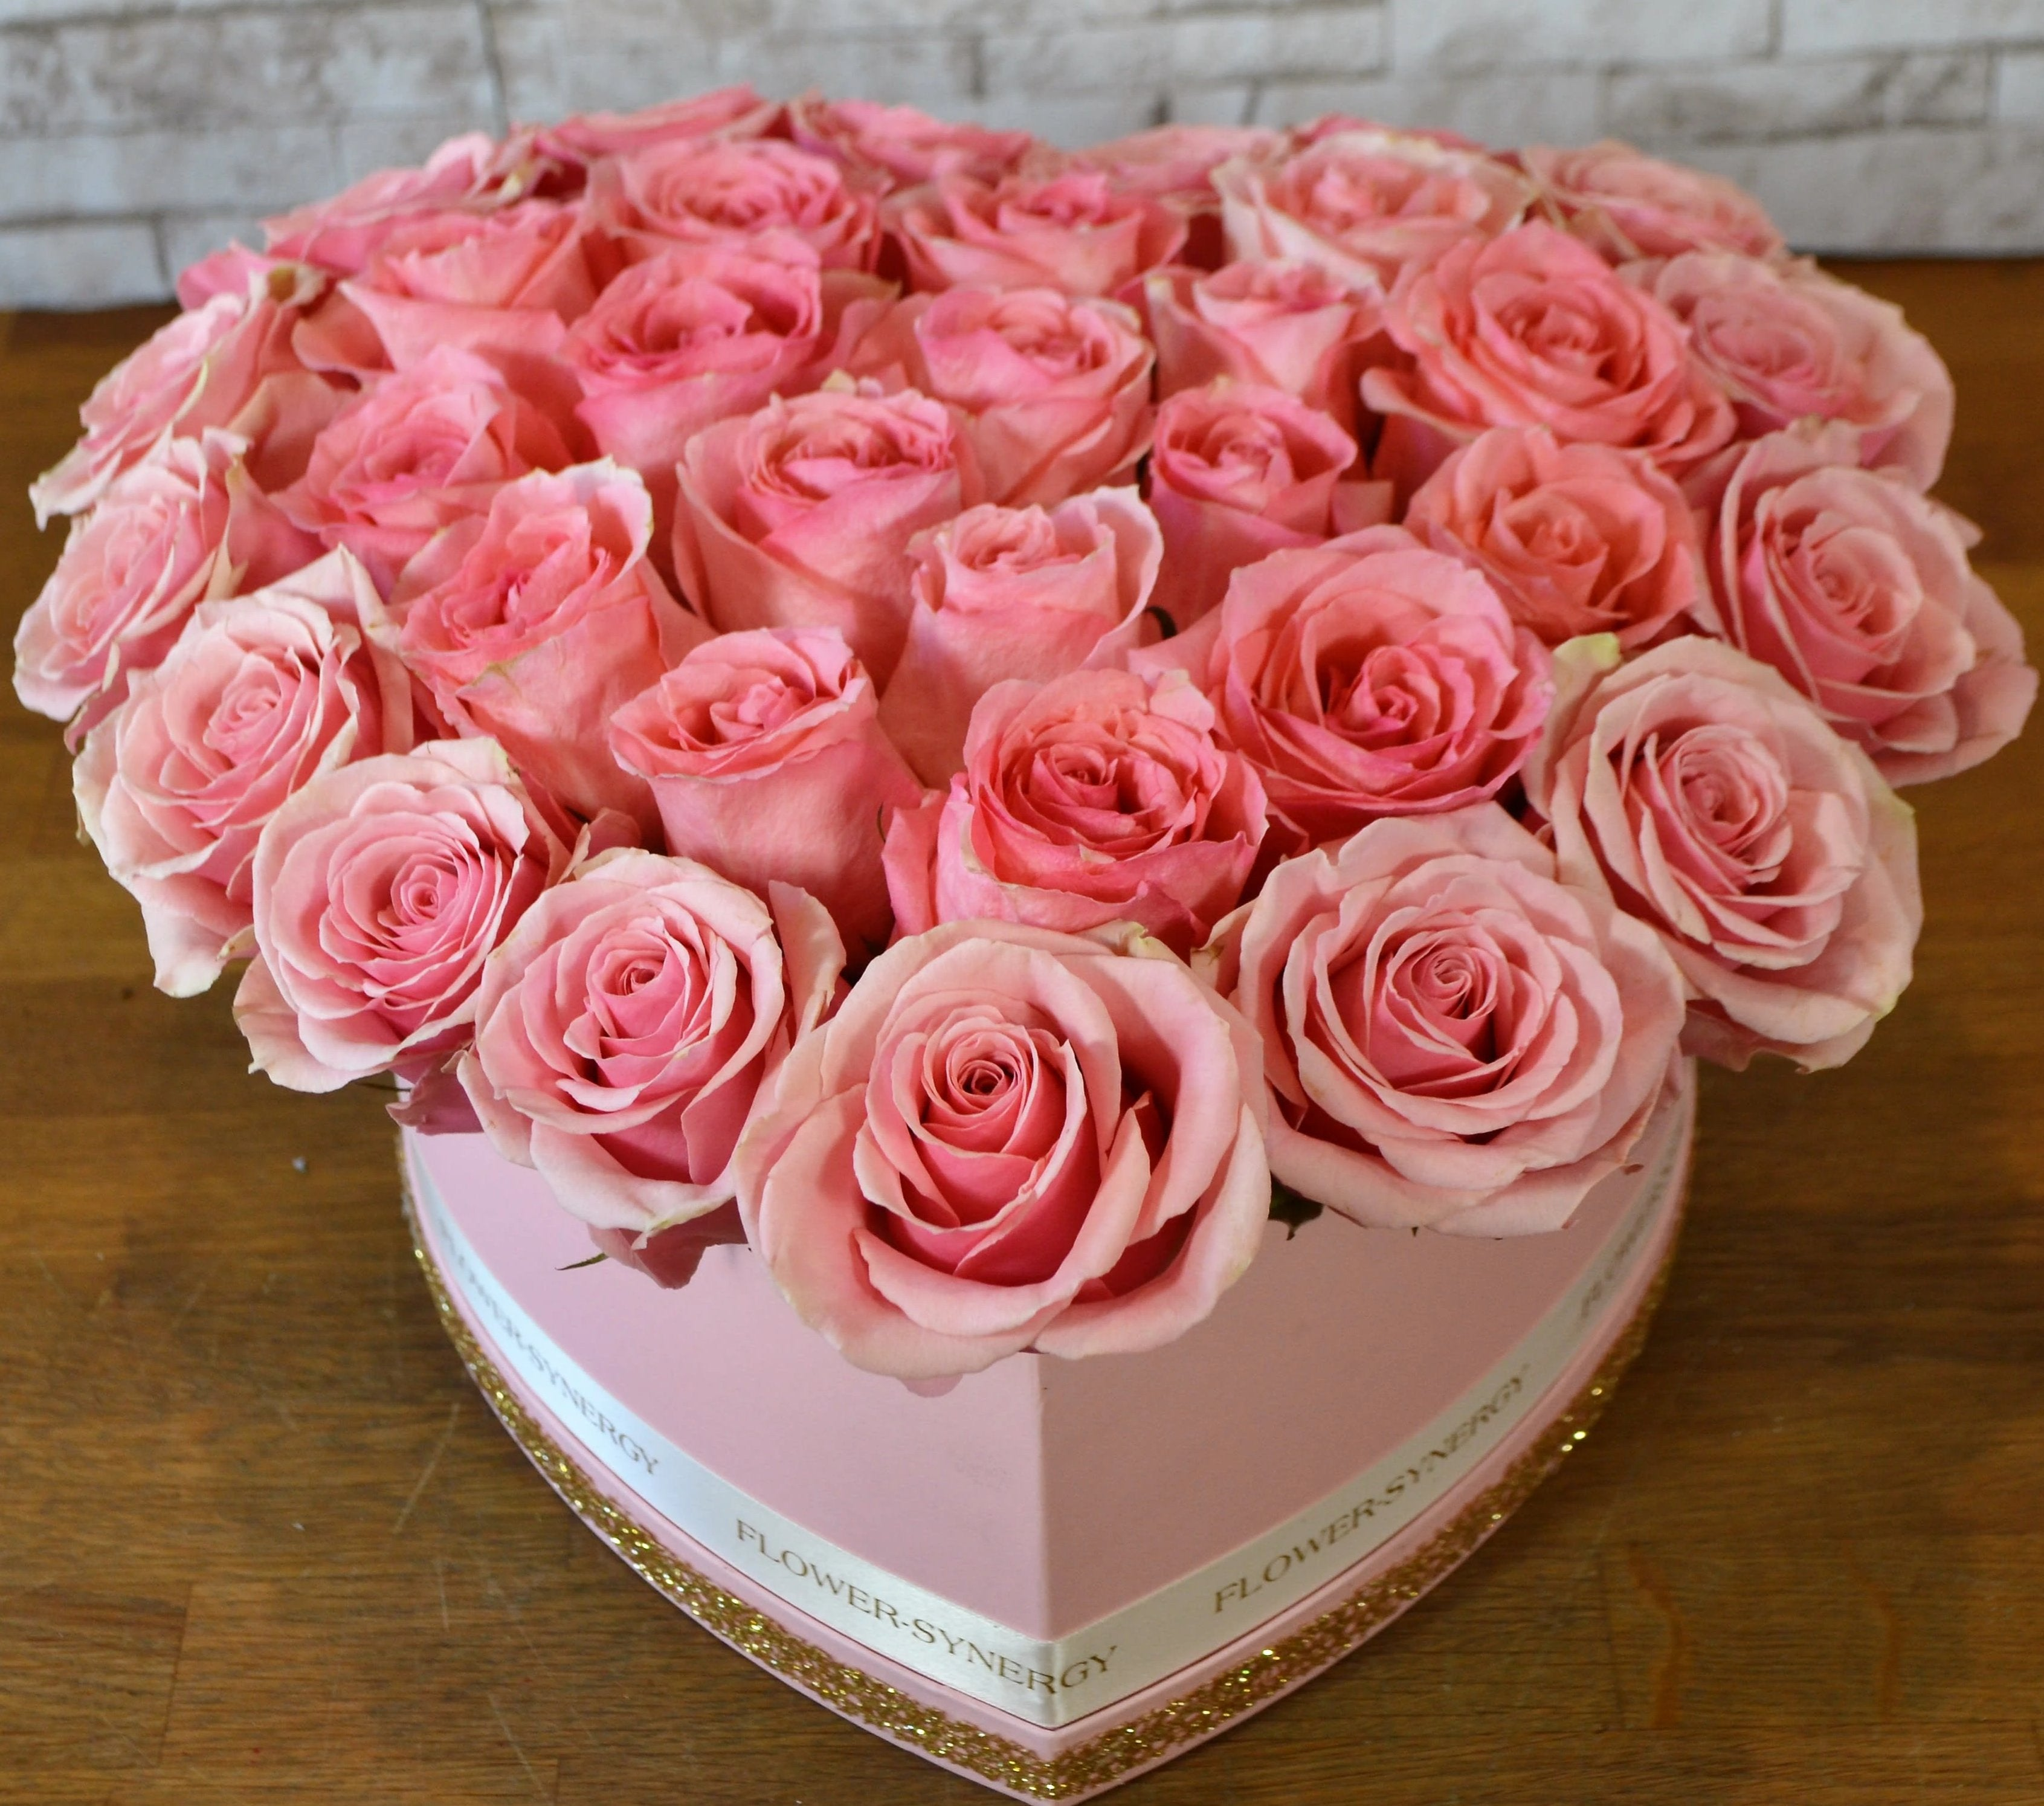 Love  & Romance with Pink Roses - Arabian Petals